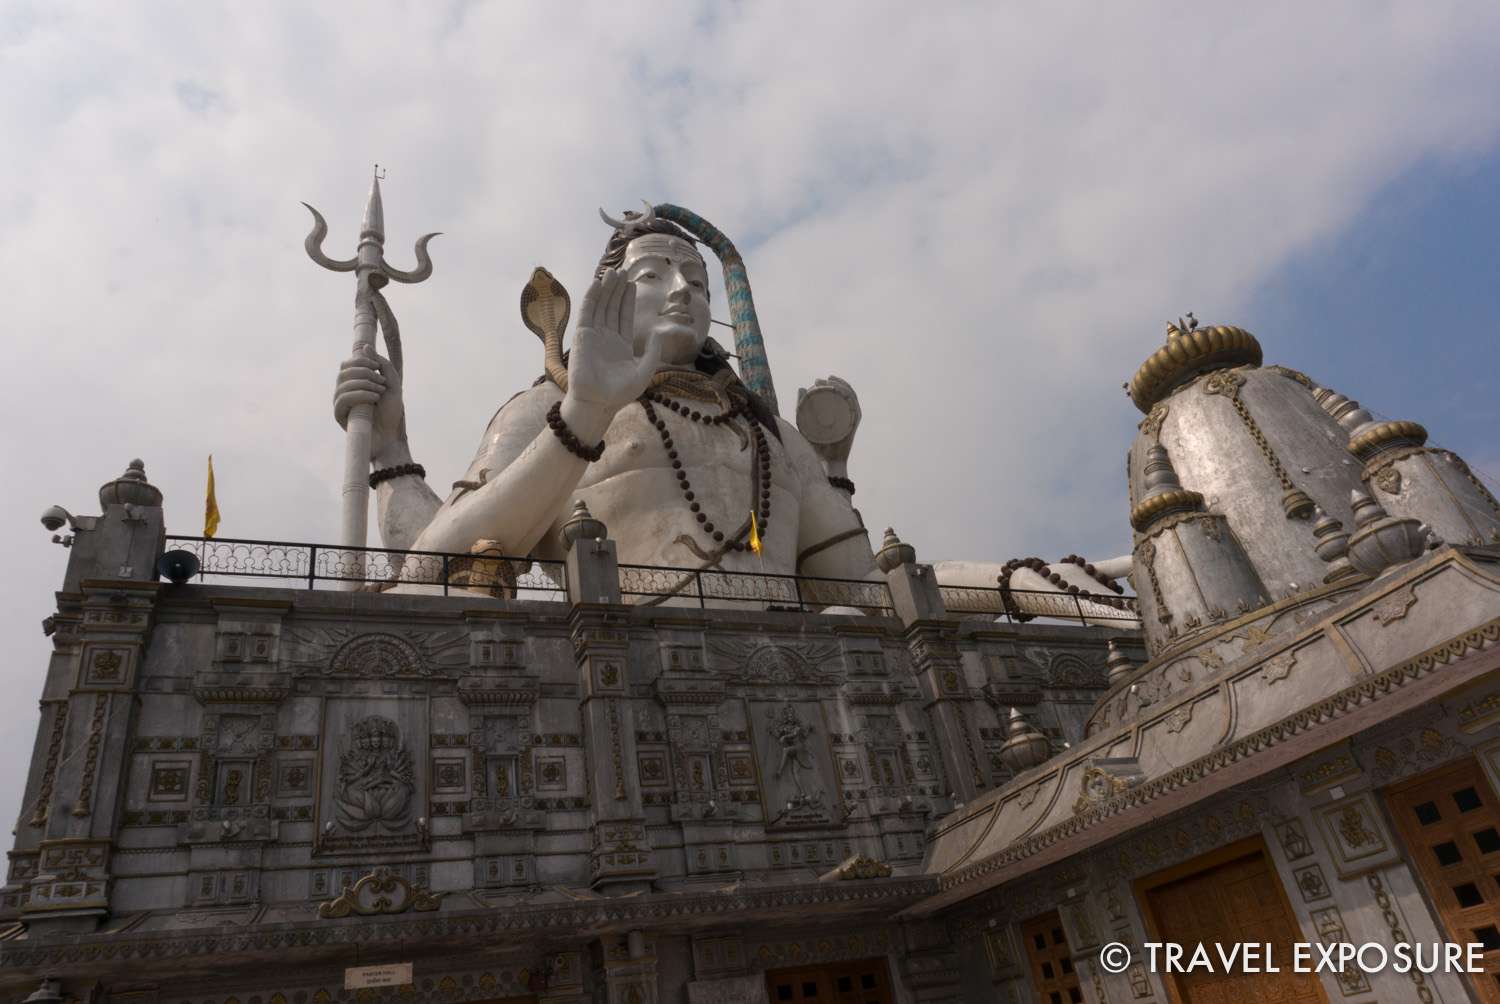 108 foot tall statue of Lord Shiva, at Chardham, in Namchi, Sikkim.